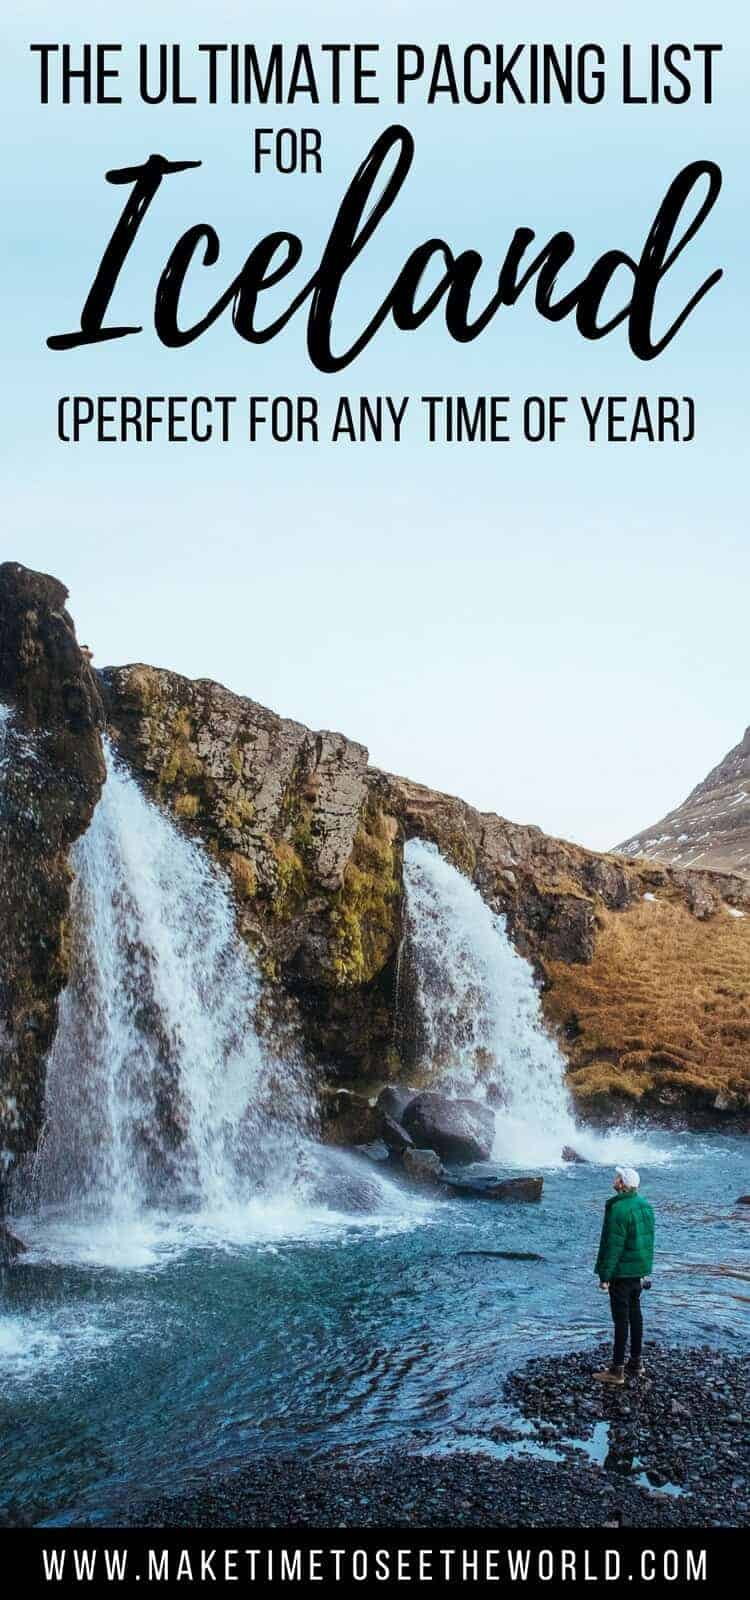 Pin for What to Pack for Iceland -Waterfall with a person standing at it's base wearing a green jacket